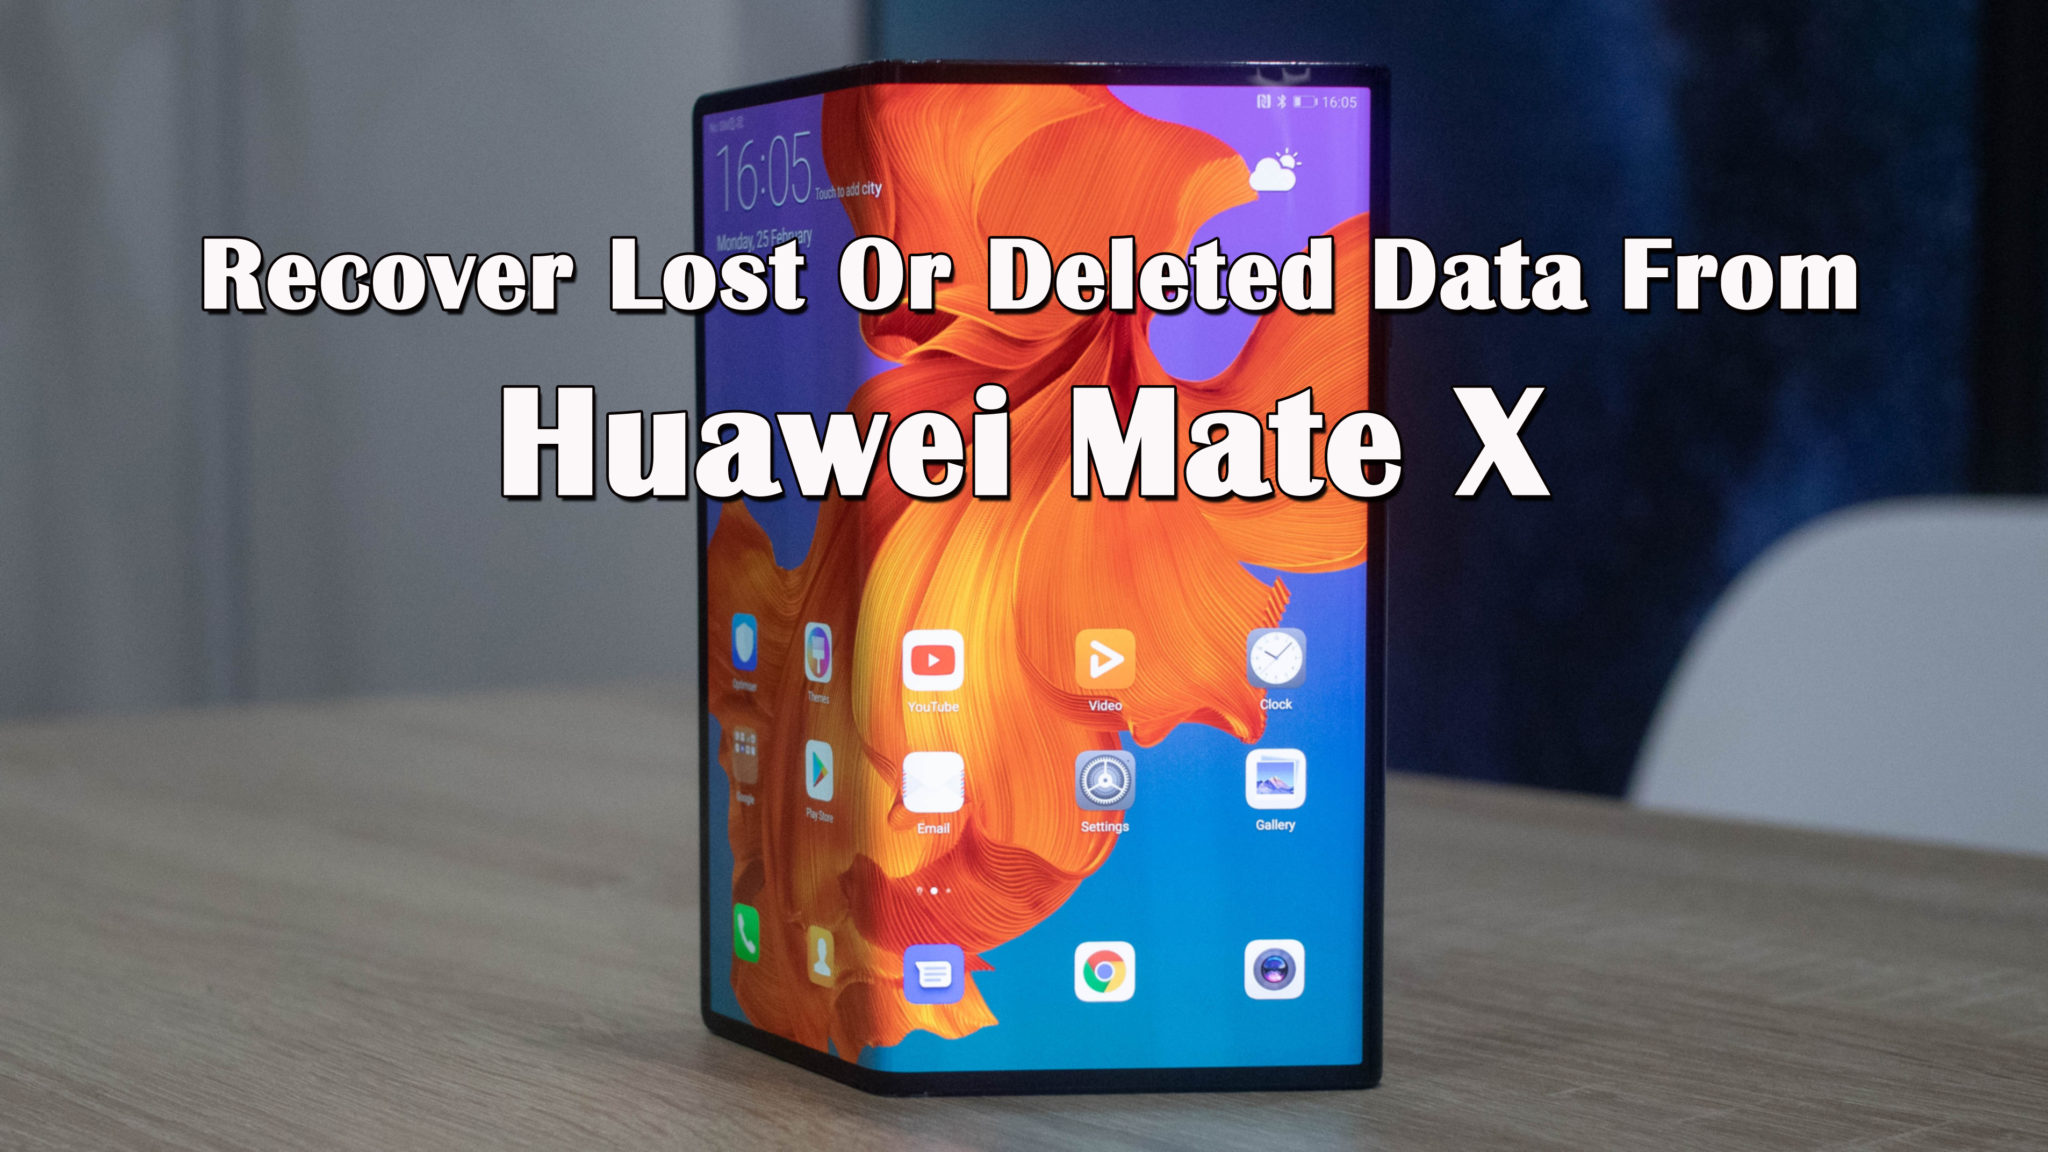 Recover Lost Or Deleted Data From Huawei Mate X